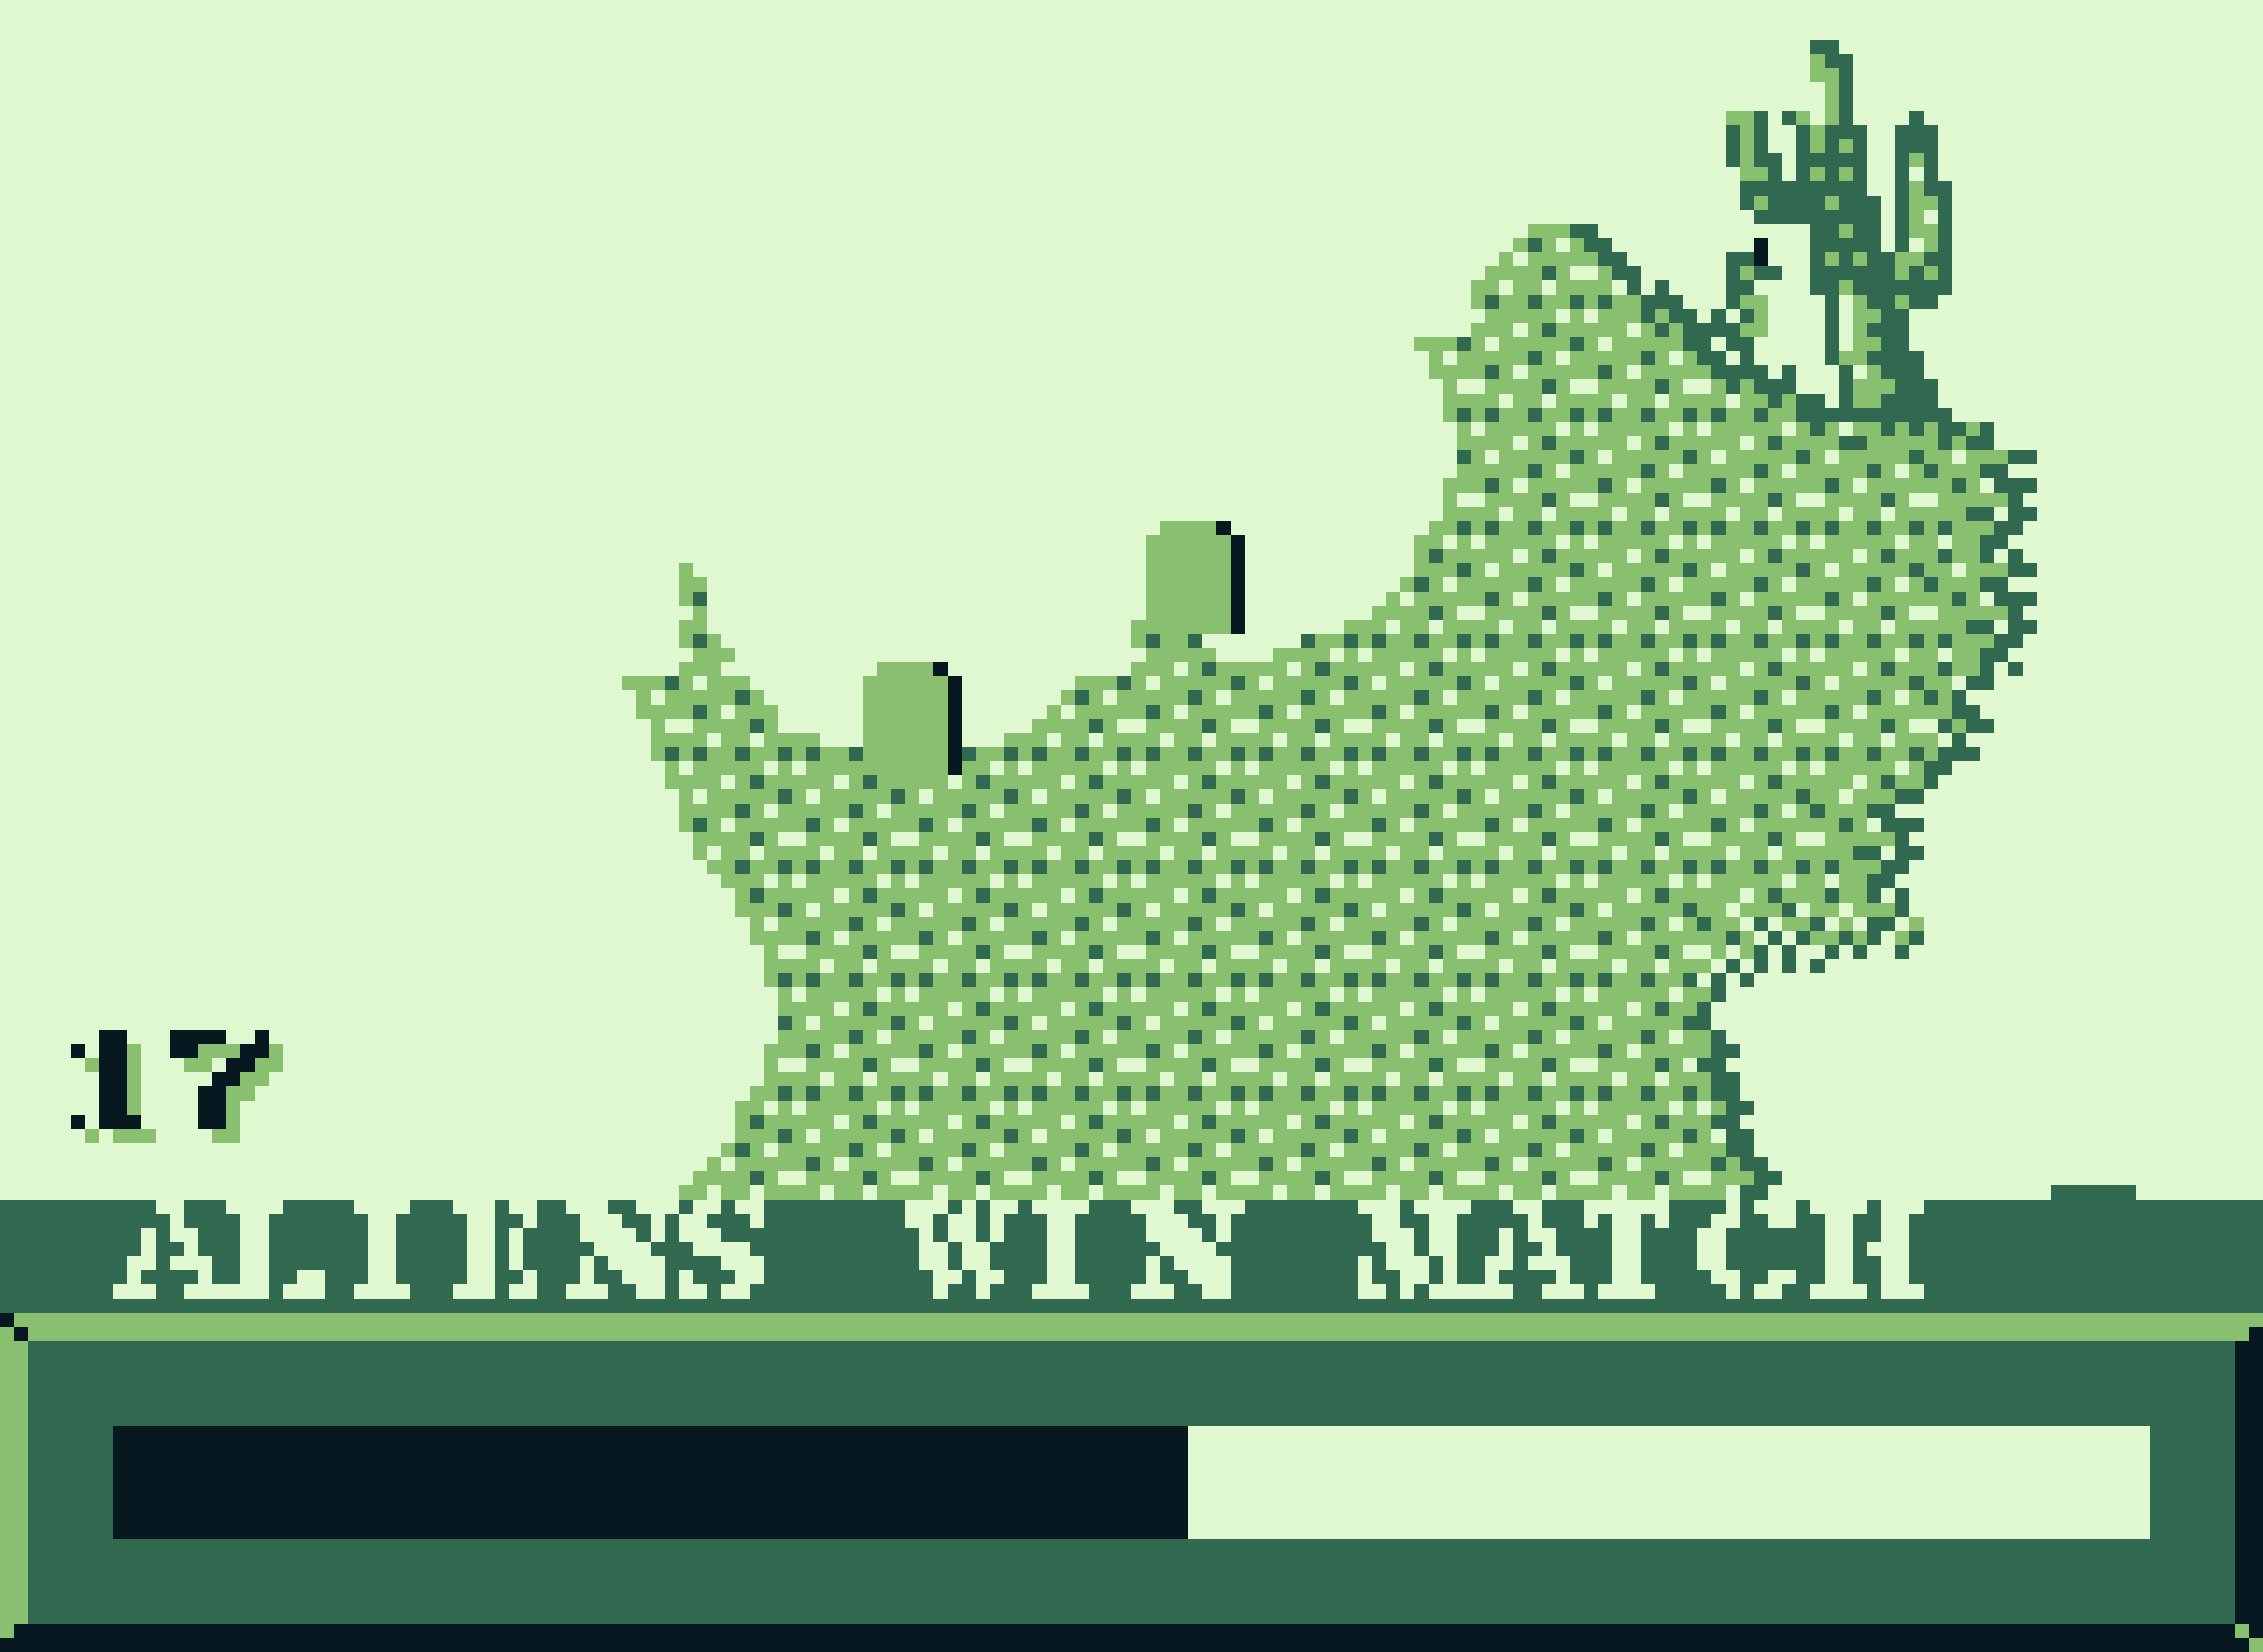 Team Aliens wins the match in Game Boy Worms